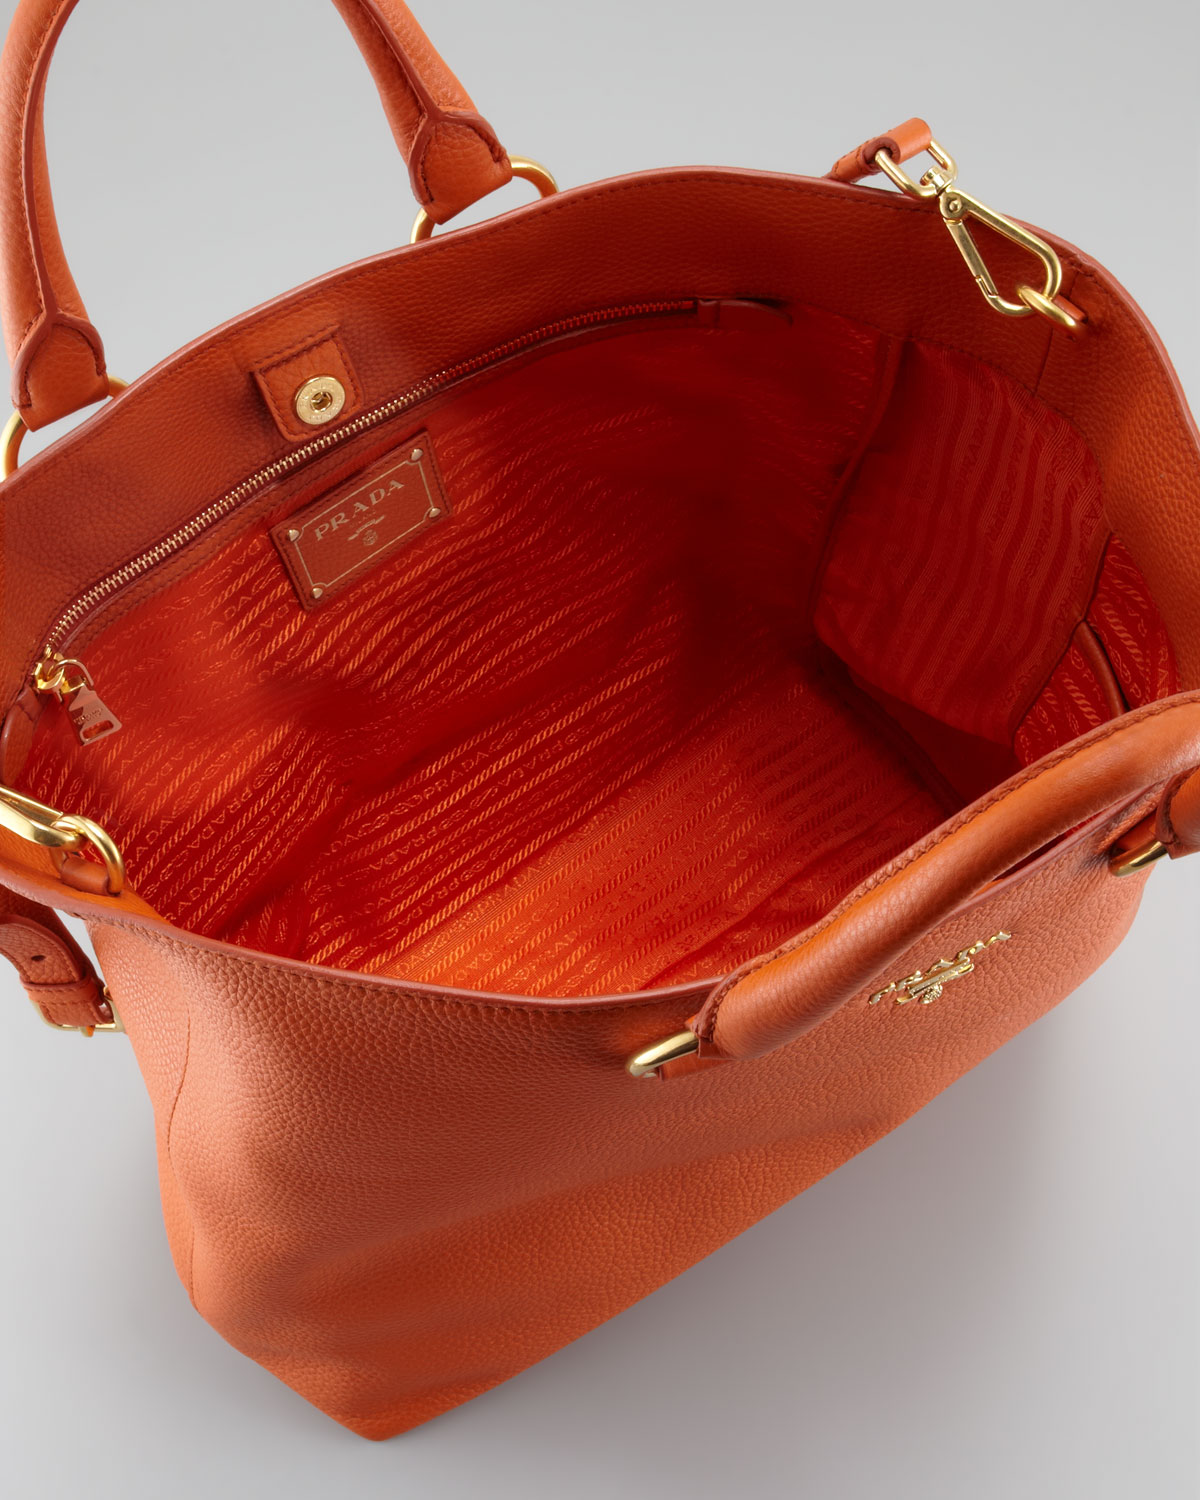 Prada Tote Bag in Orange (papaya (orange)) | Lyst - prada galleria bag papaya